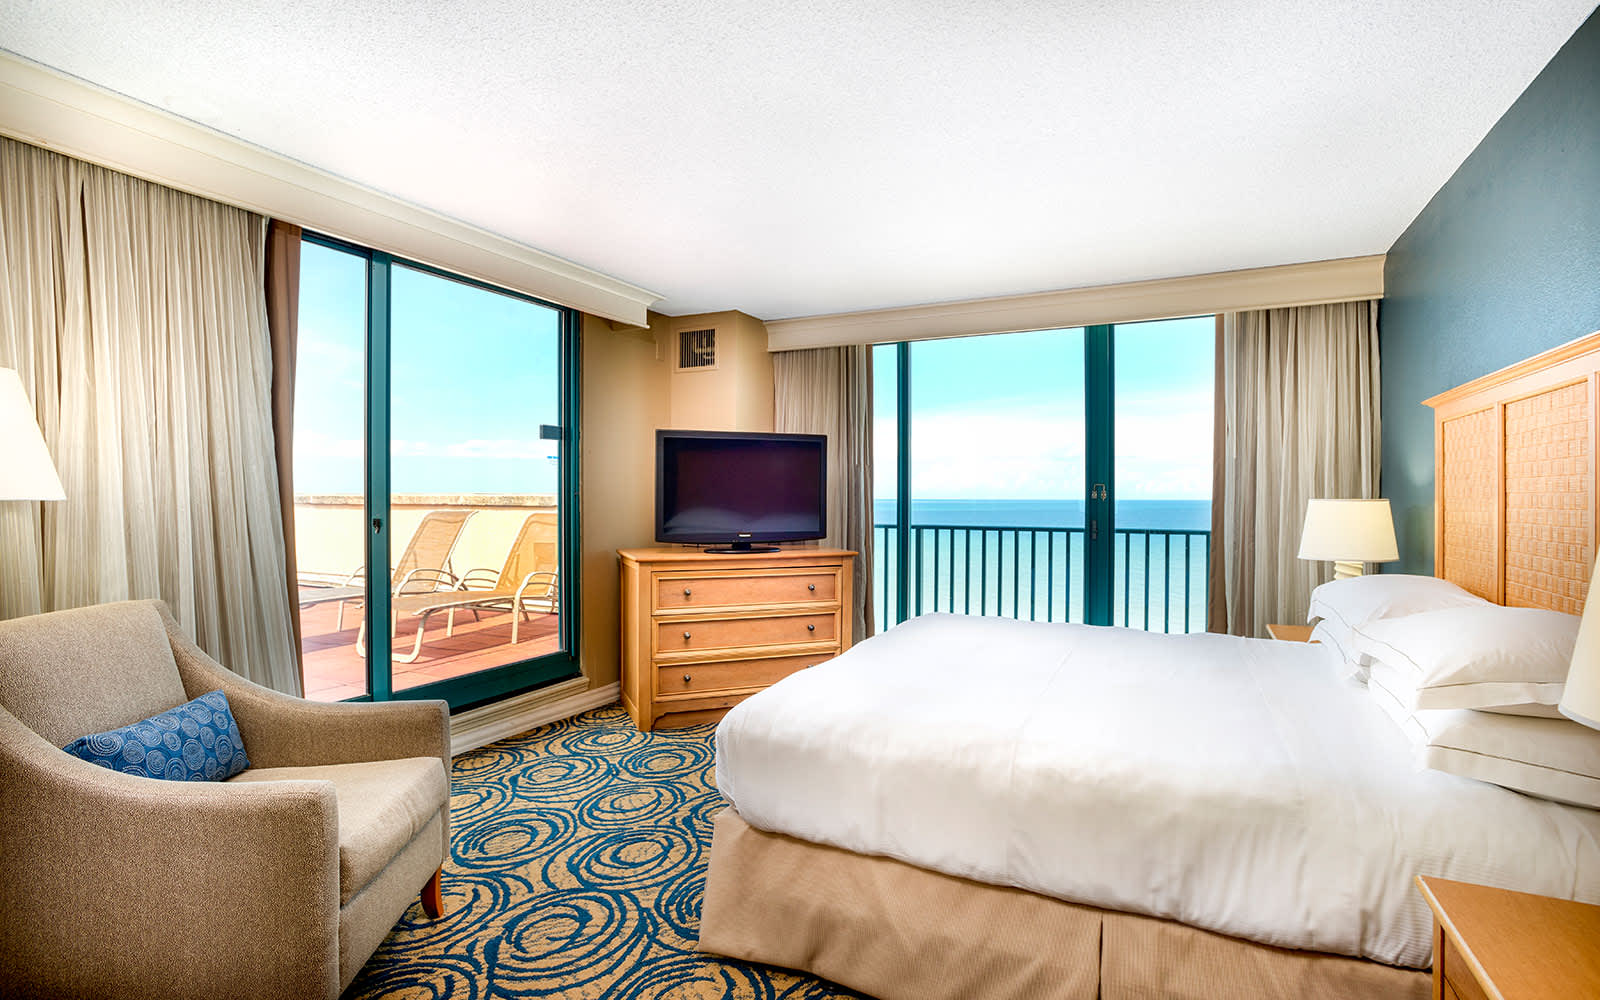 Suites of Hilton Daytona Beach Oceanfront Resort